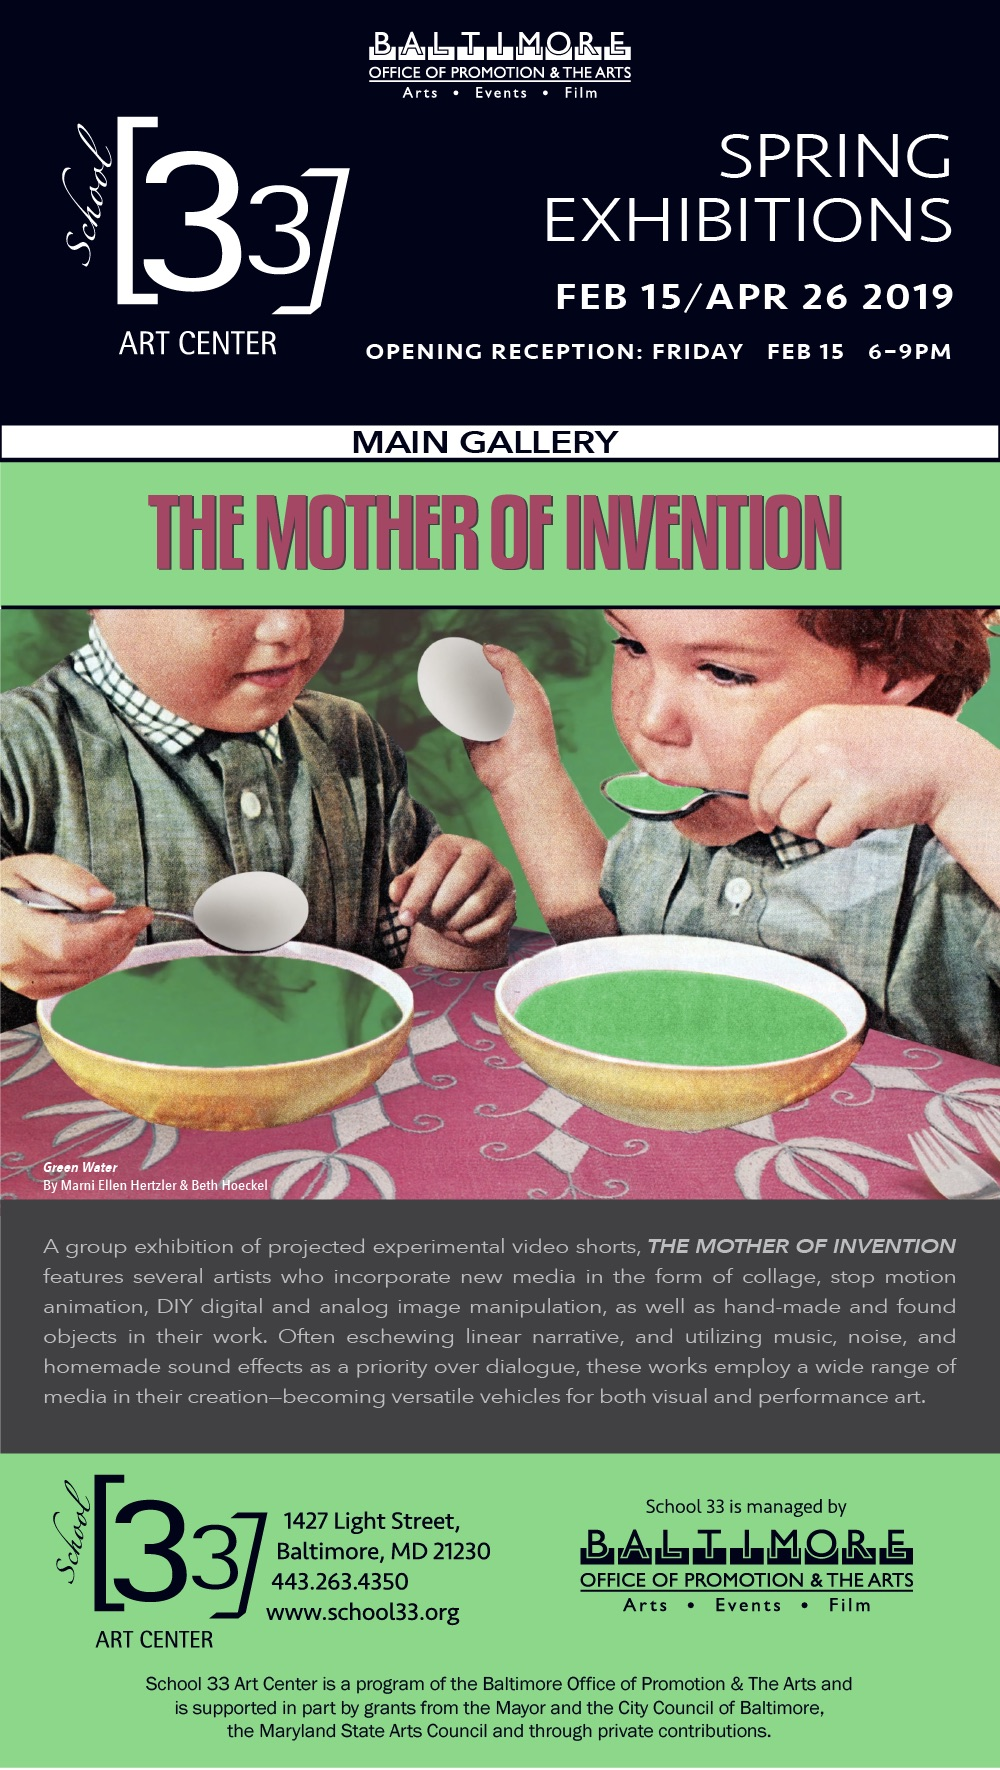 Feb-Apr Exibitions-revision_Motherofinvention copy.jpg